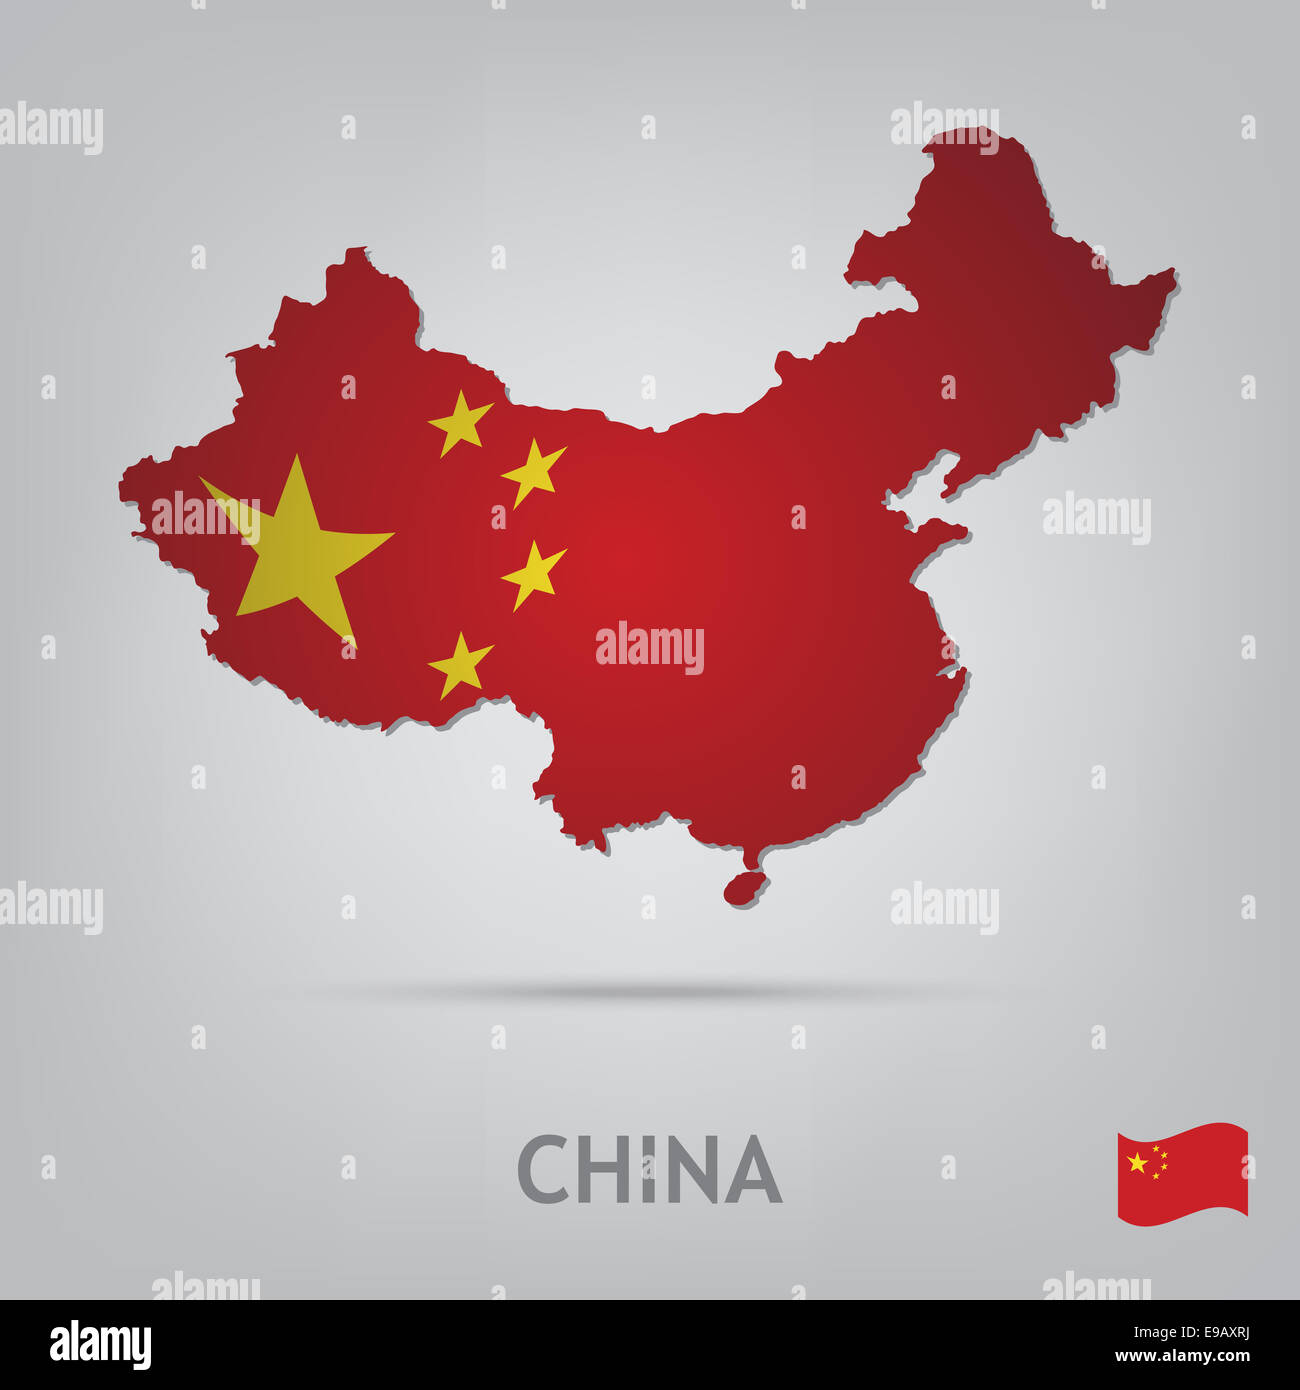 country china - Stock Image